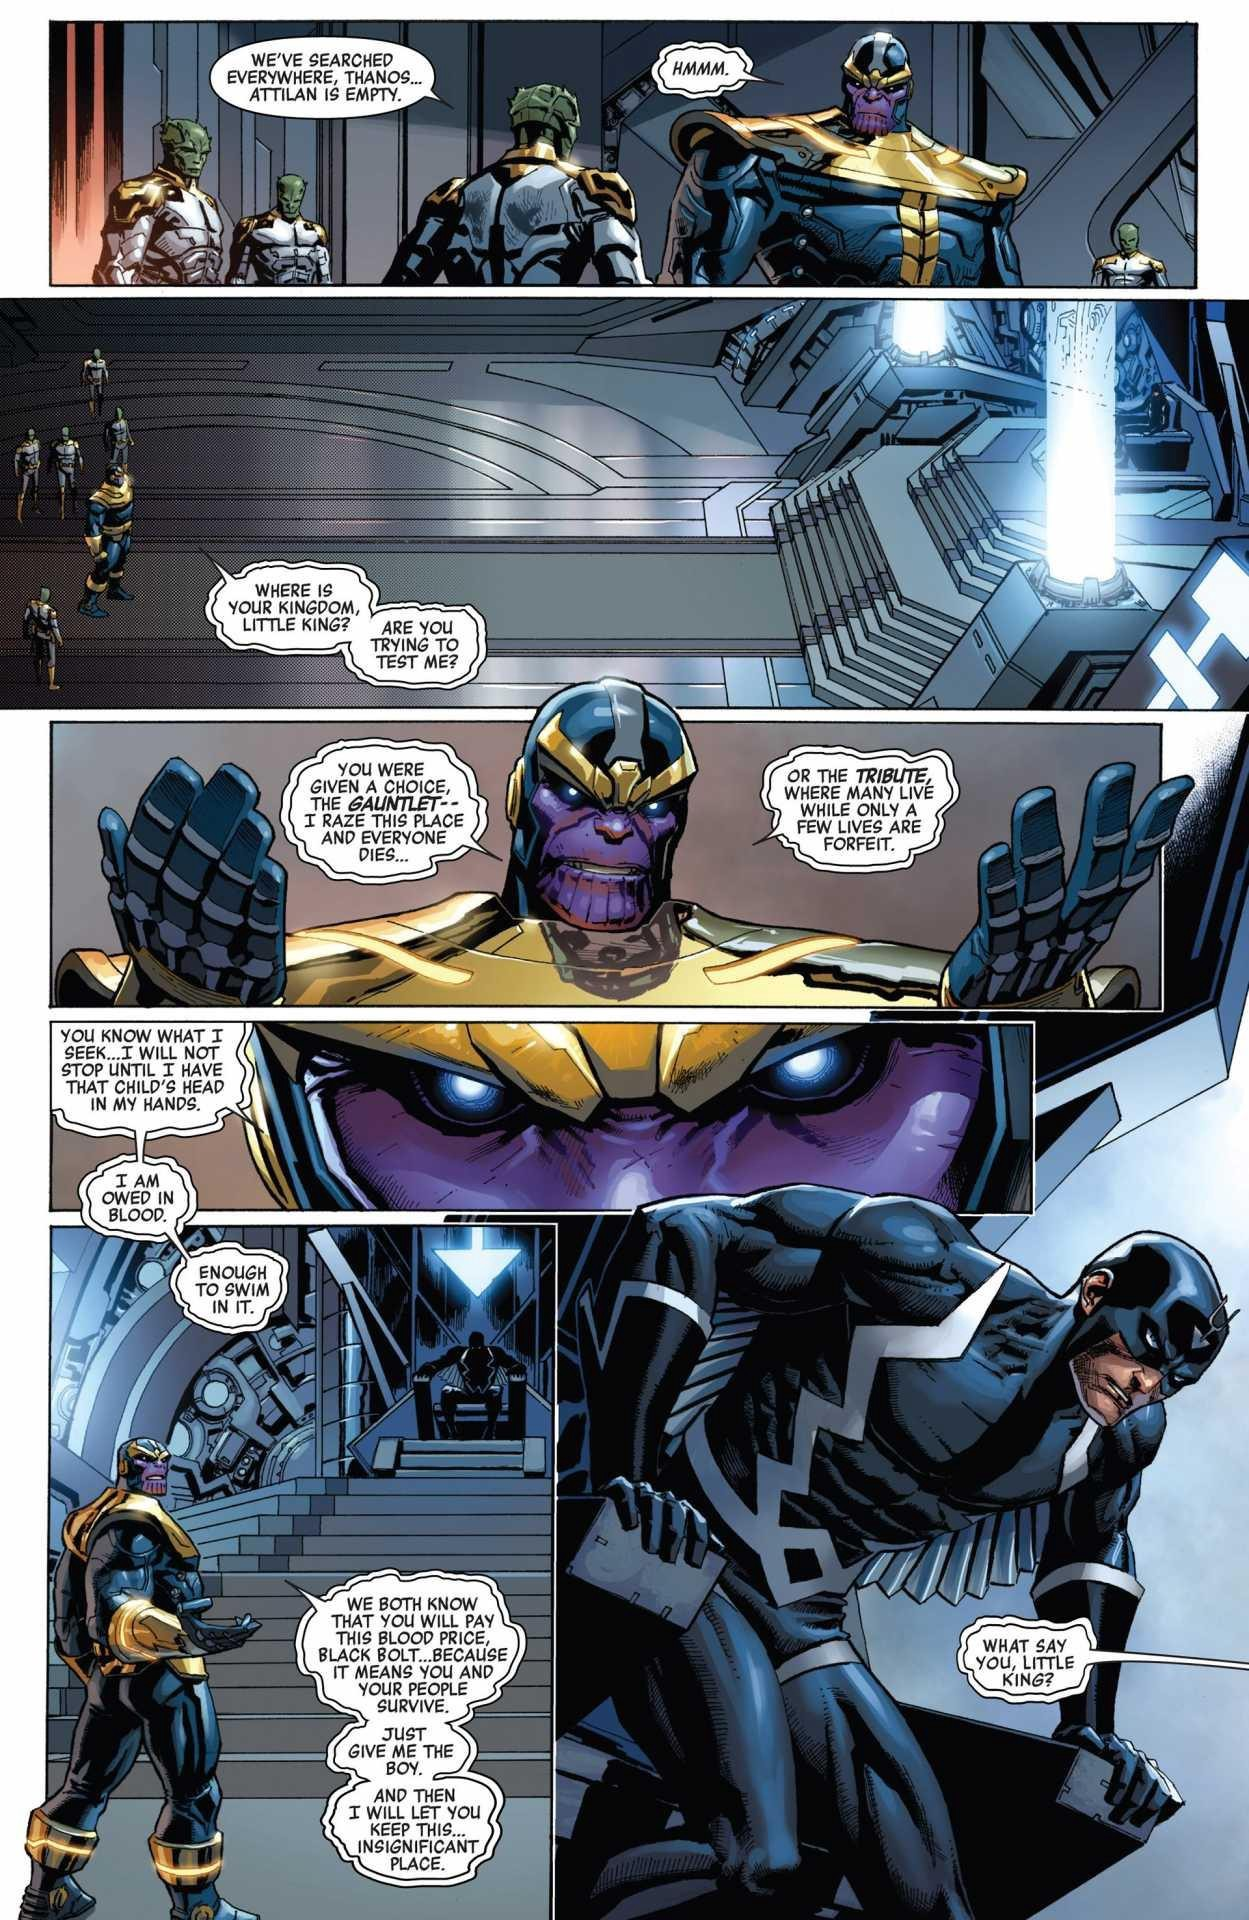 Could Thanos defeat the All-father, Odin? - Noteworthy - The Journal